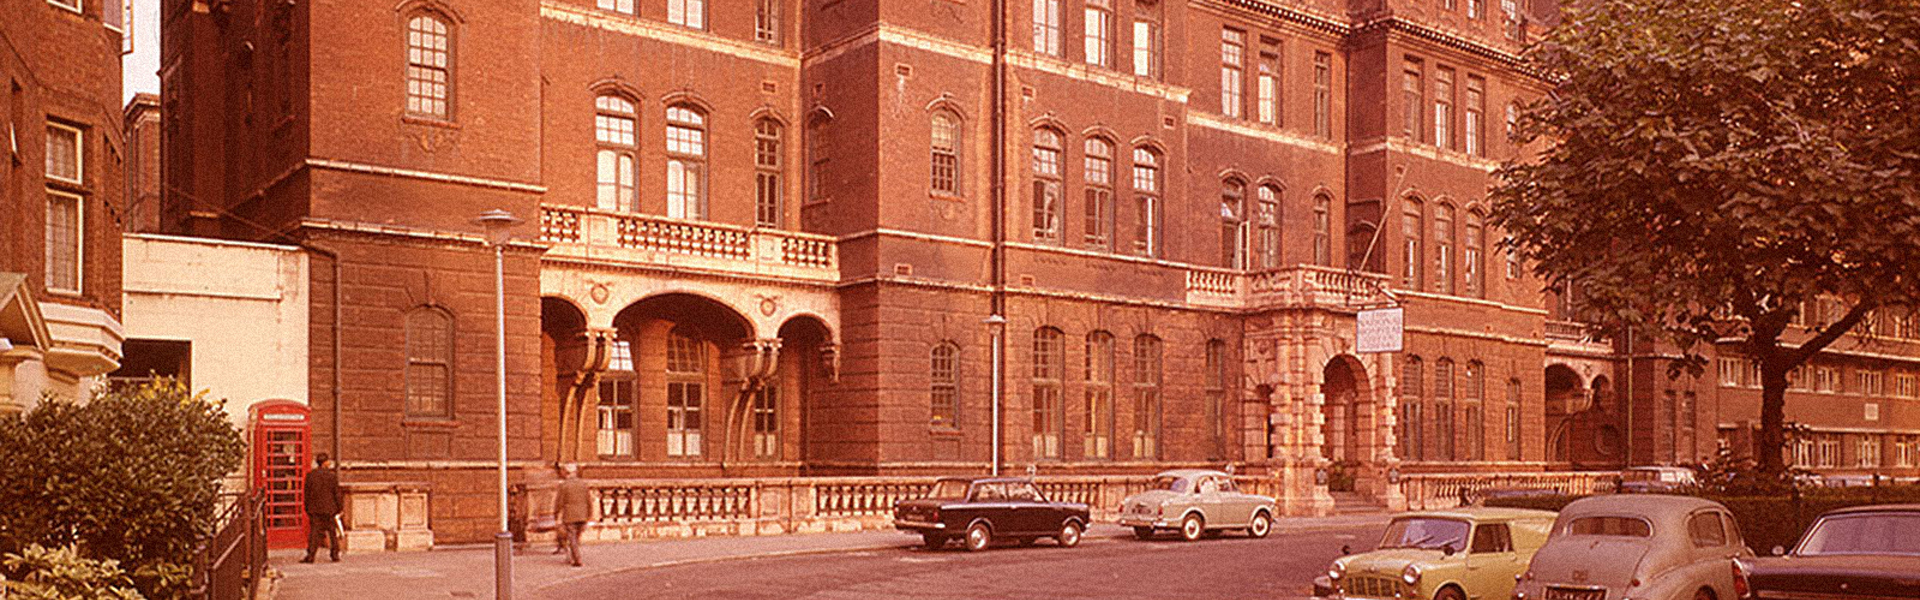 National Hospital for Neurology and Neurosurgery in the 1960s